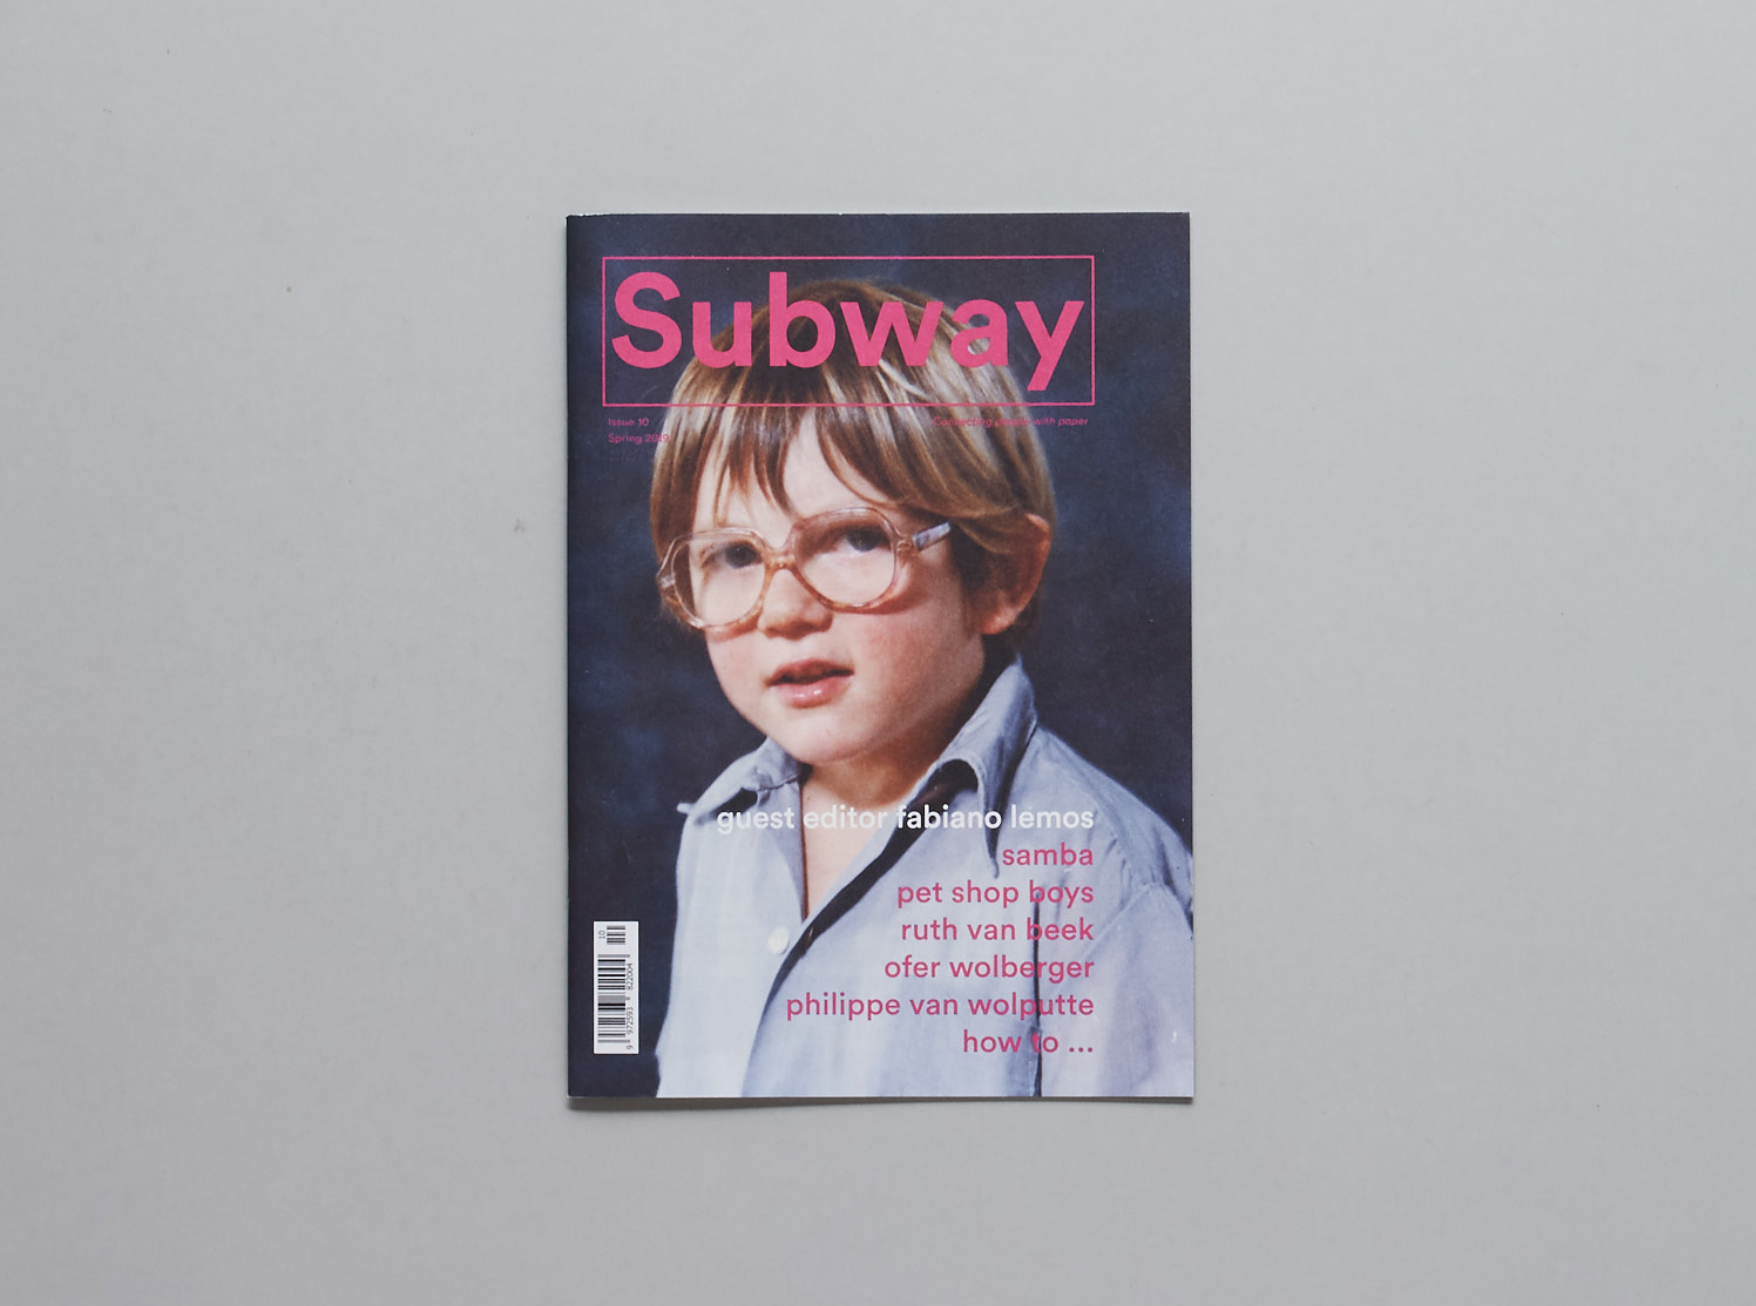 SUBWAY	, Issue 10-50m London